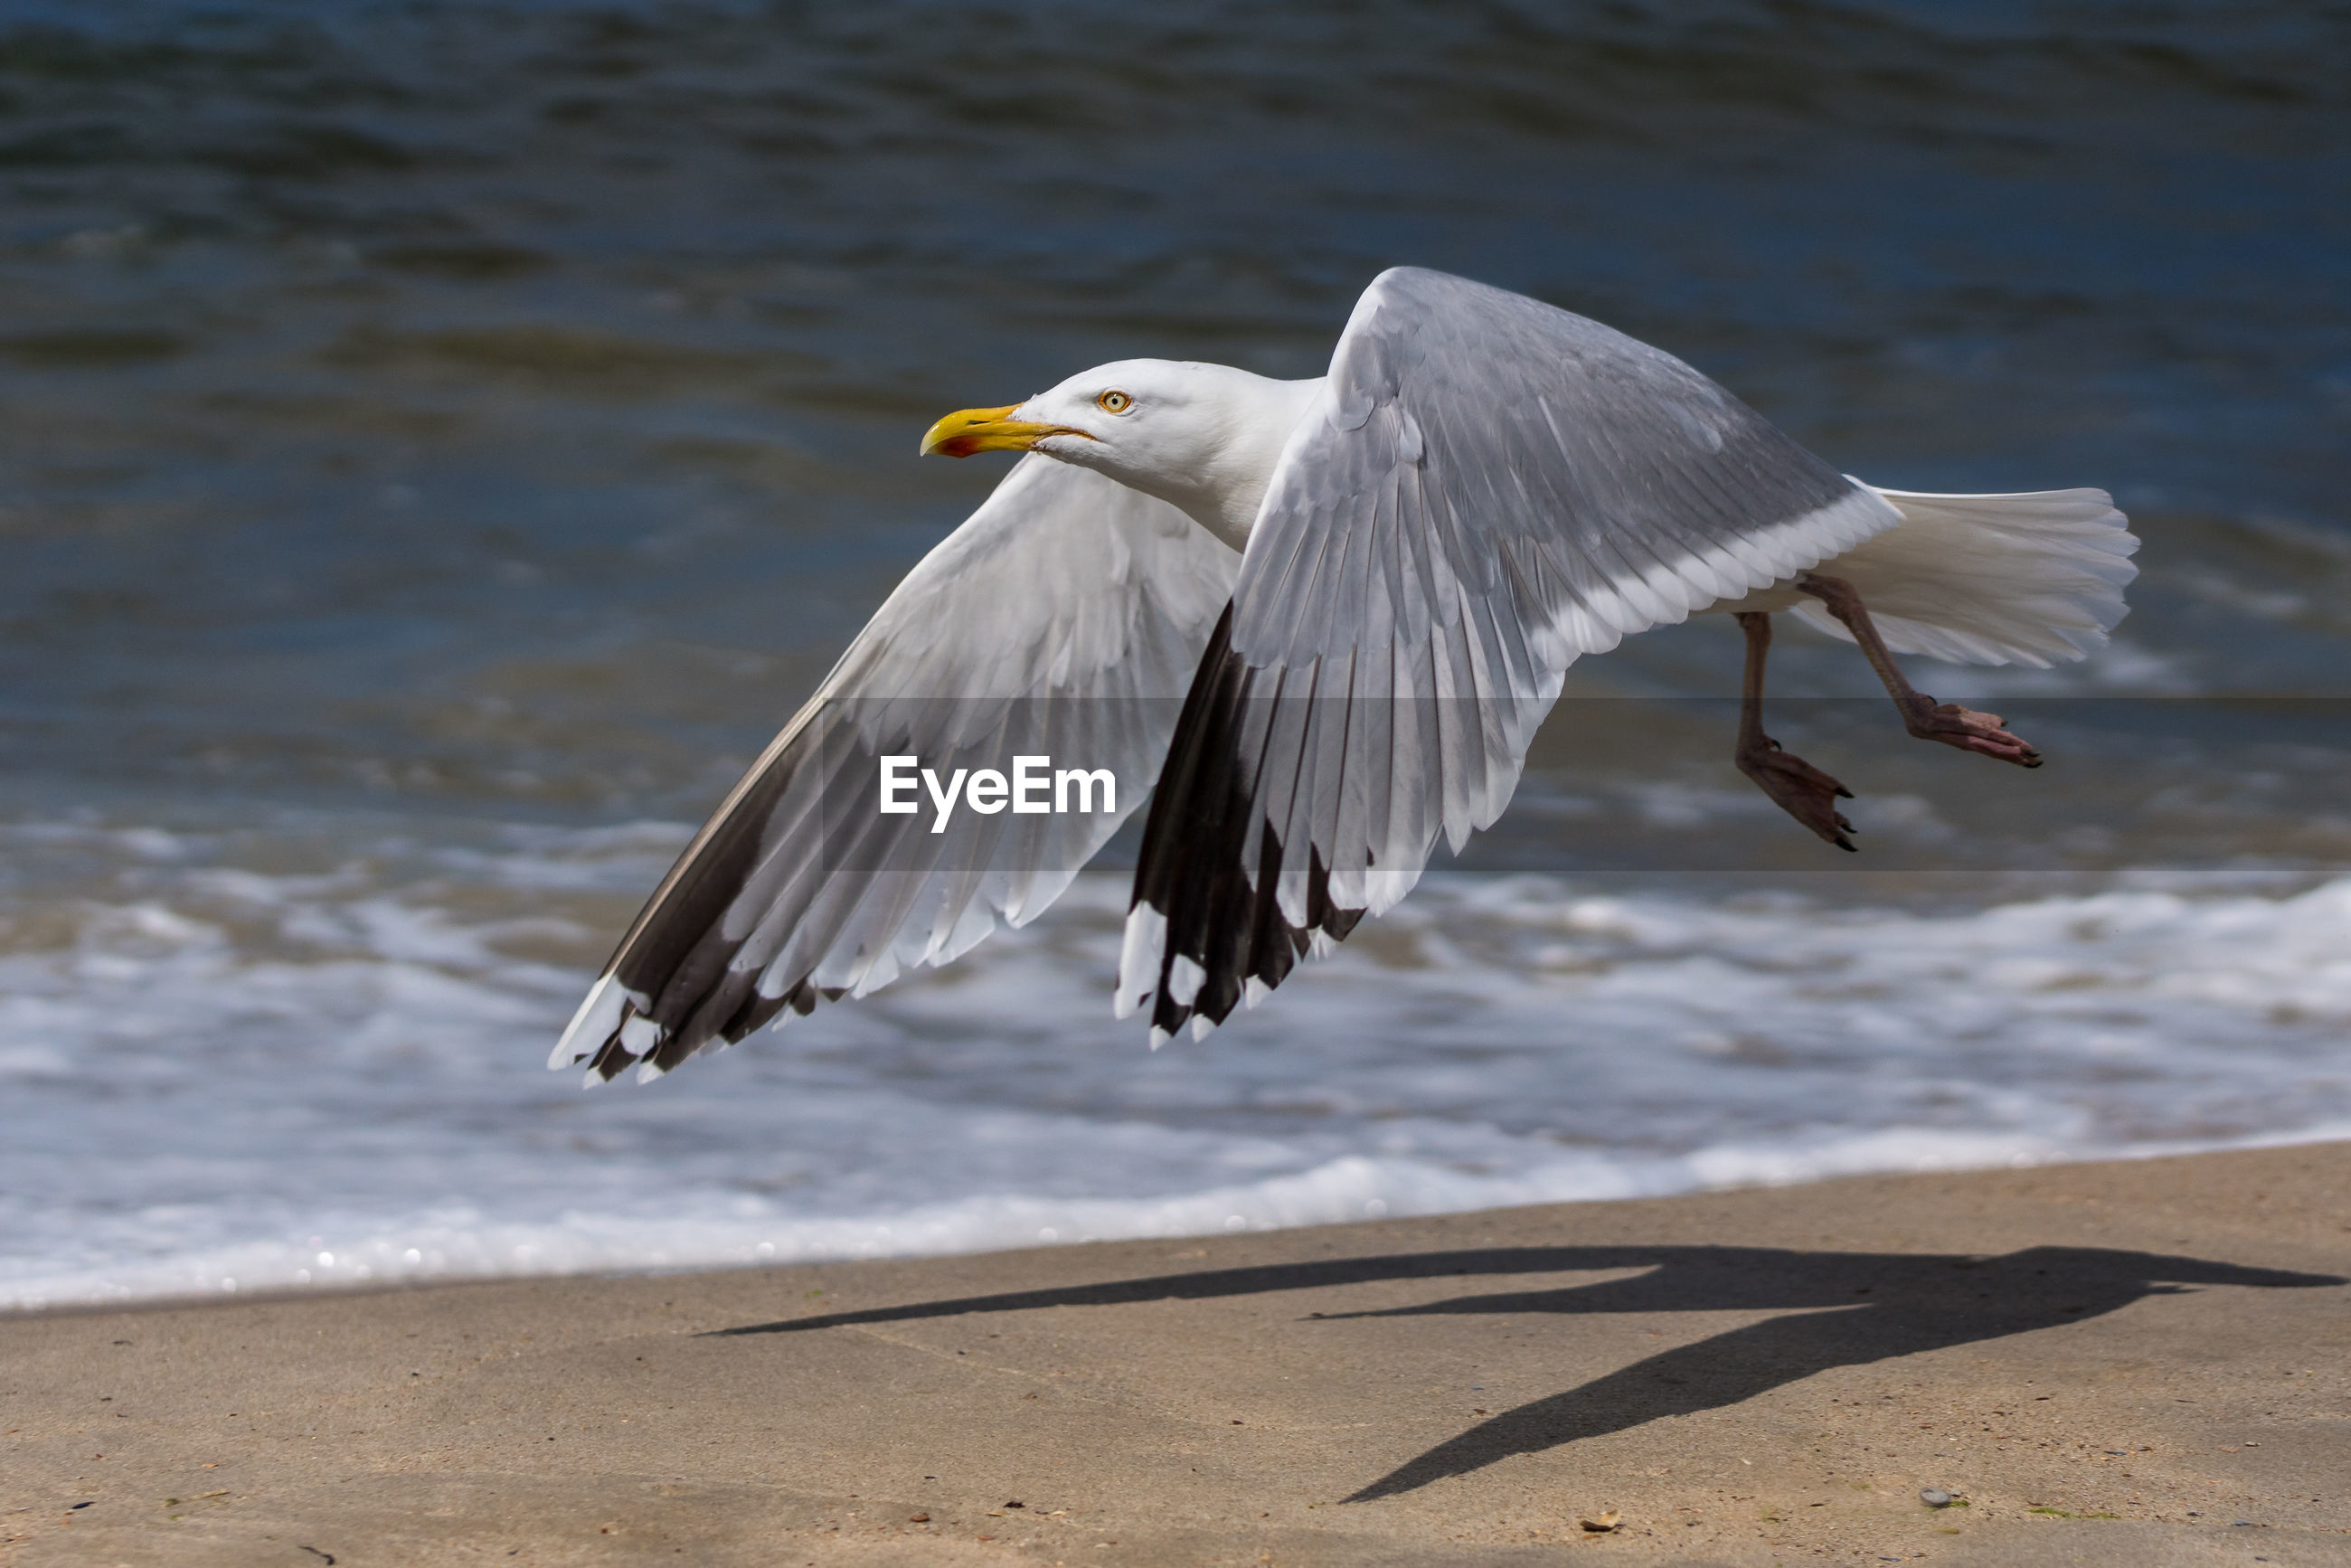 Close-up of seagull flying at beach during sunny day